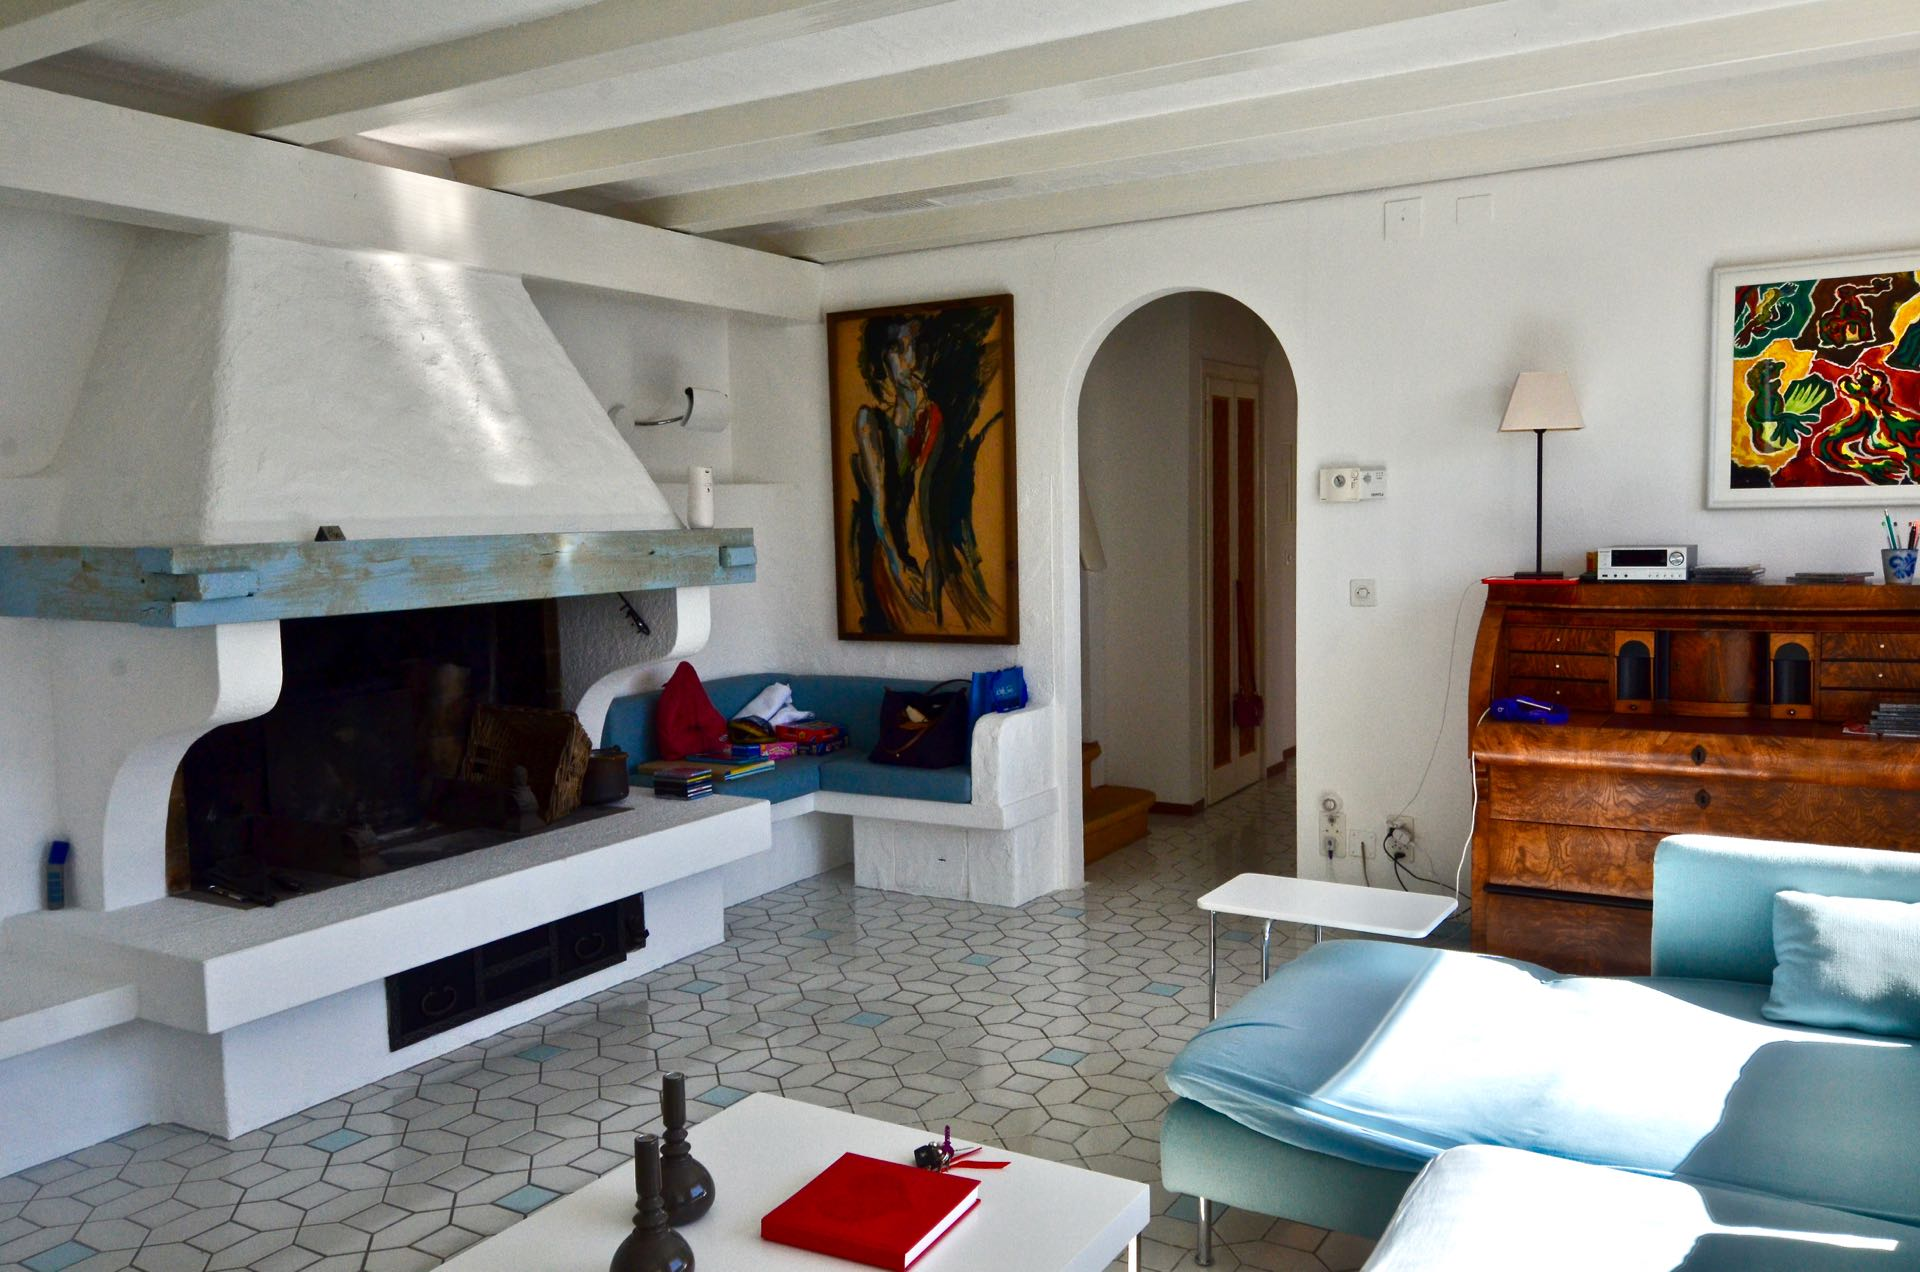 Living room, villa (to be renovated) at building land in Rocco, Ticino, Switzerland for sale